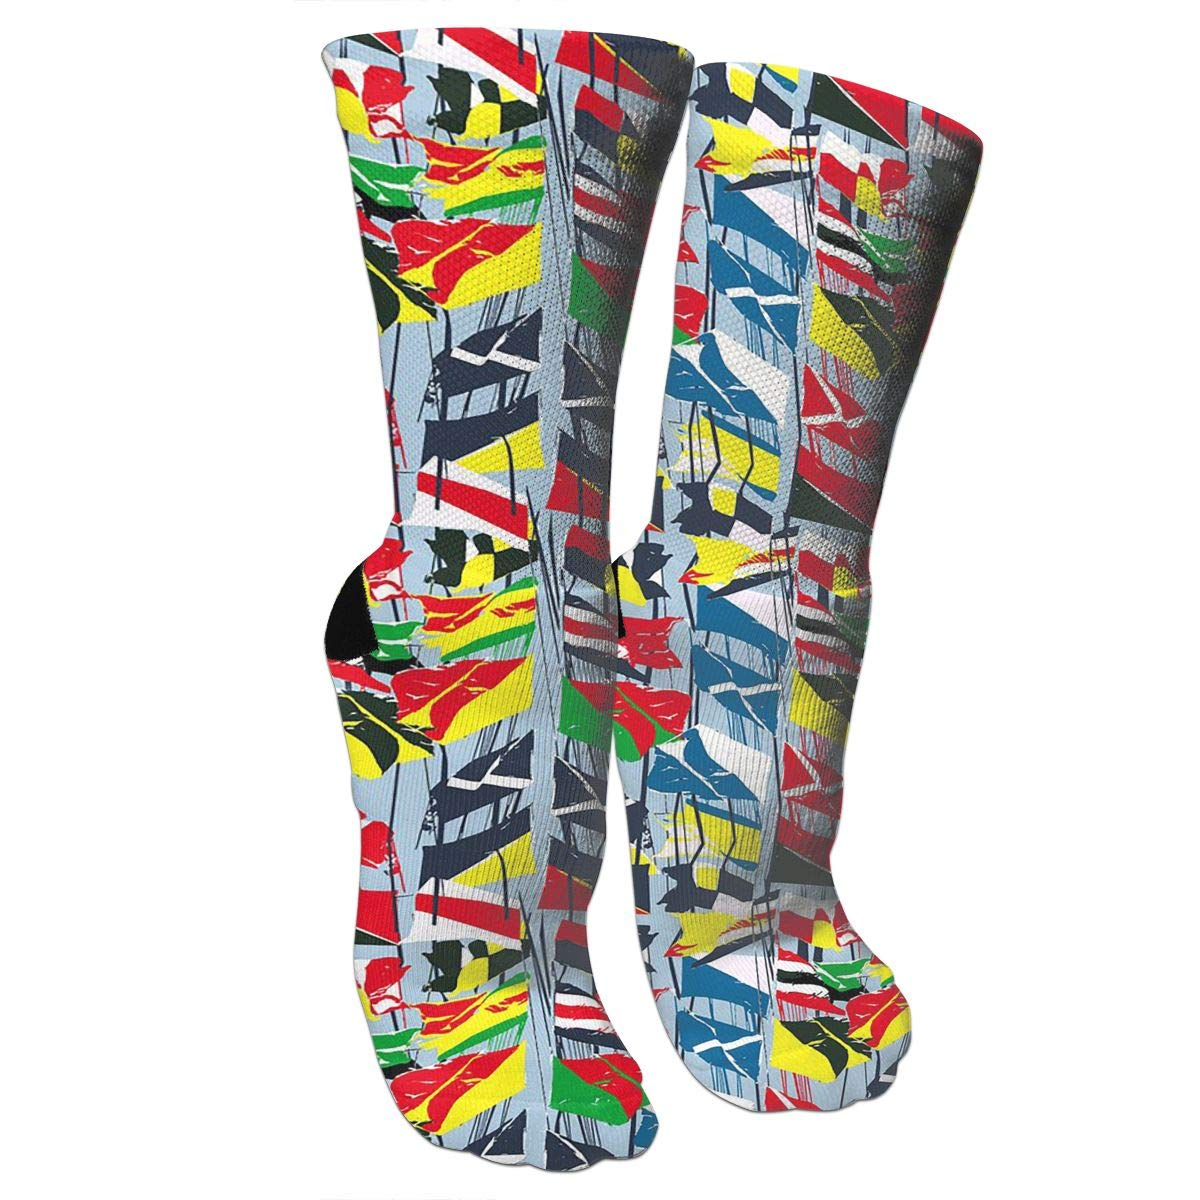 Flag Background PictureCrazy Socks Casual Cotton Crew Socks Cute Funny Sock Great For Sports And Hiking